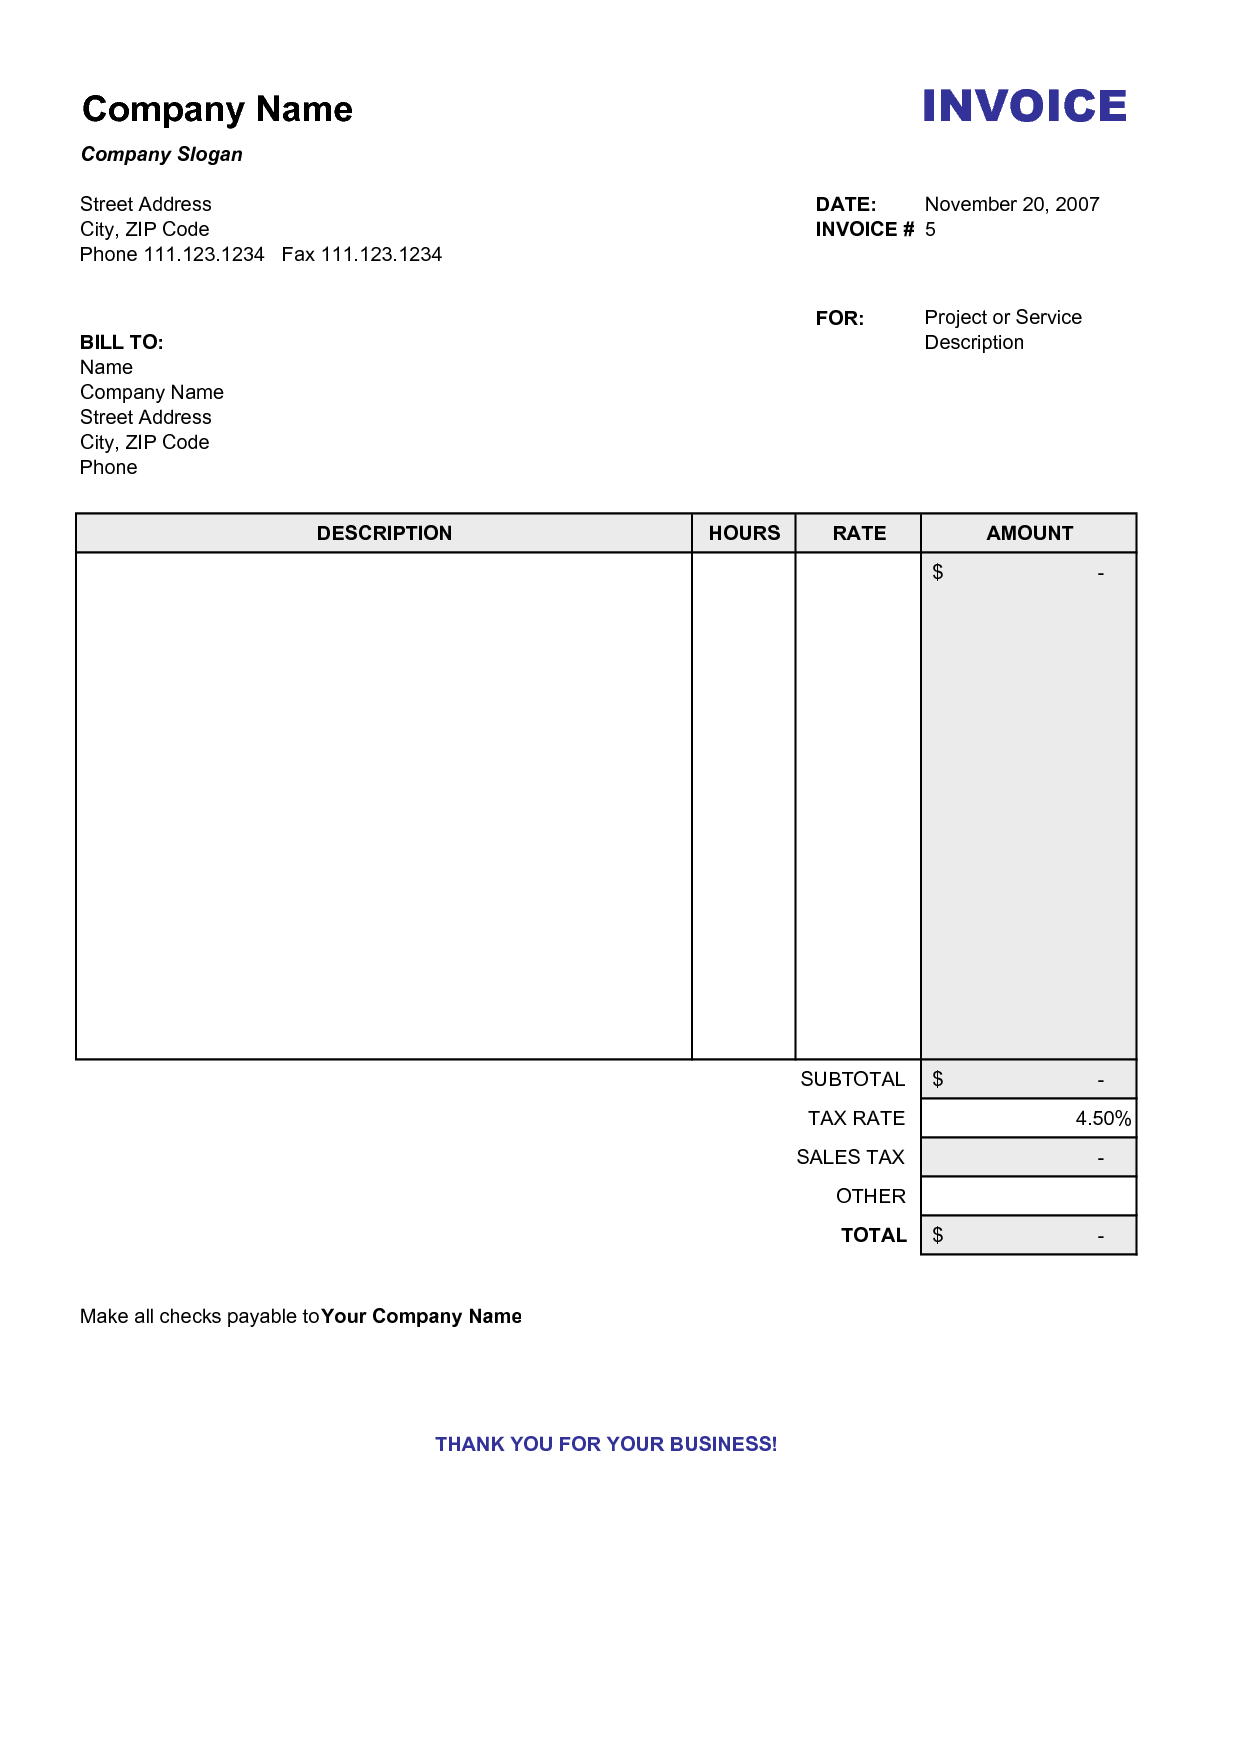 Blank Billing Invoice Scope Of Work Template Organization - Free pdf invoice template download online bike store